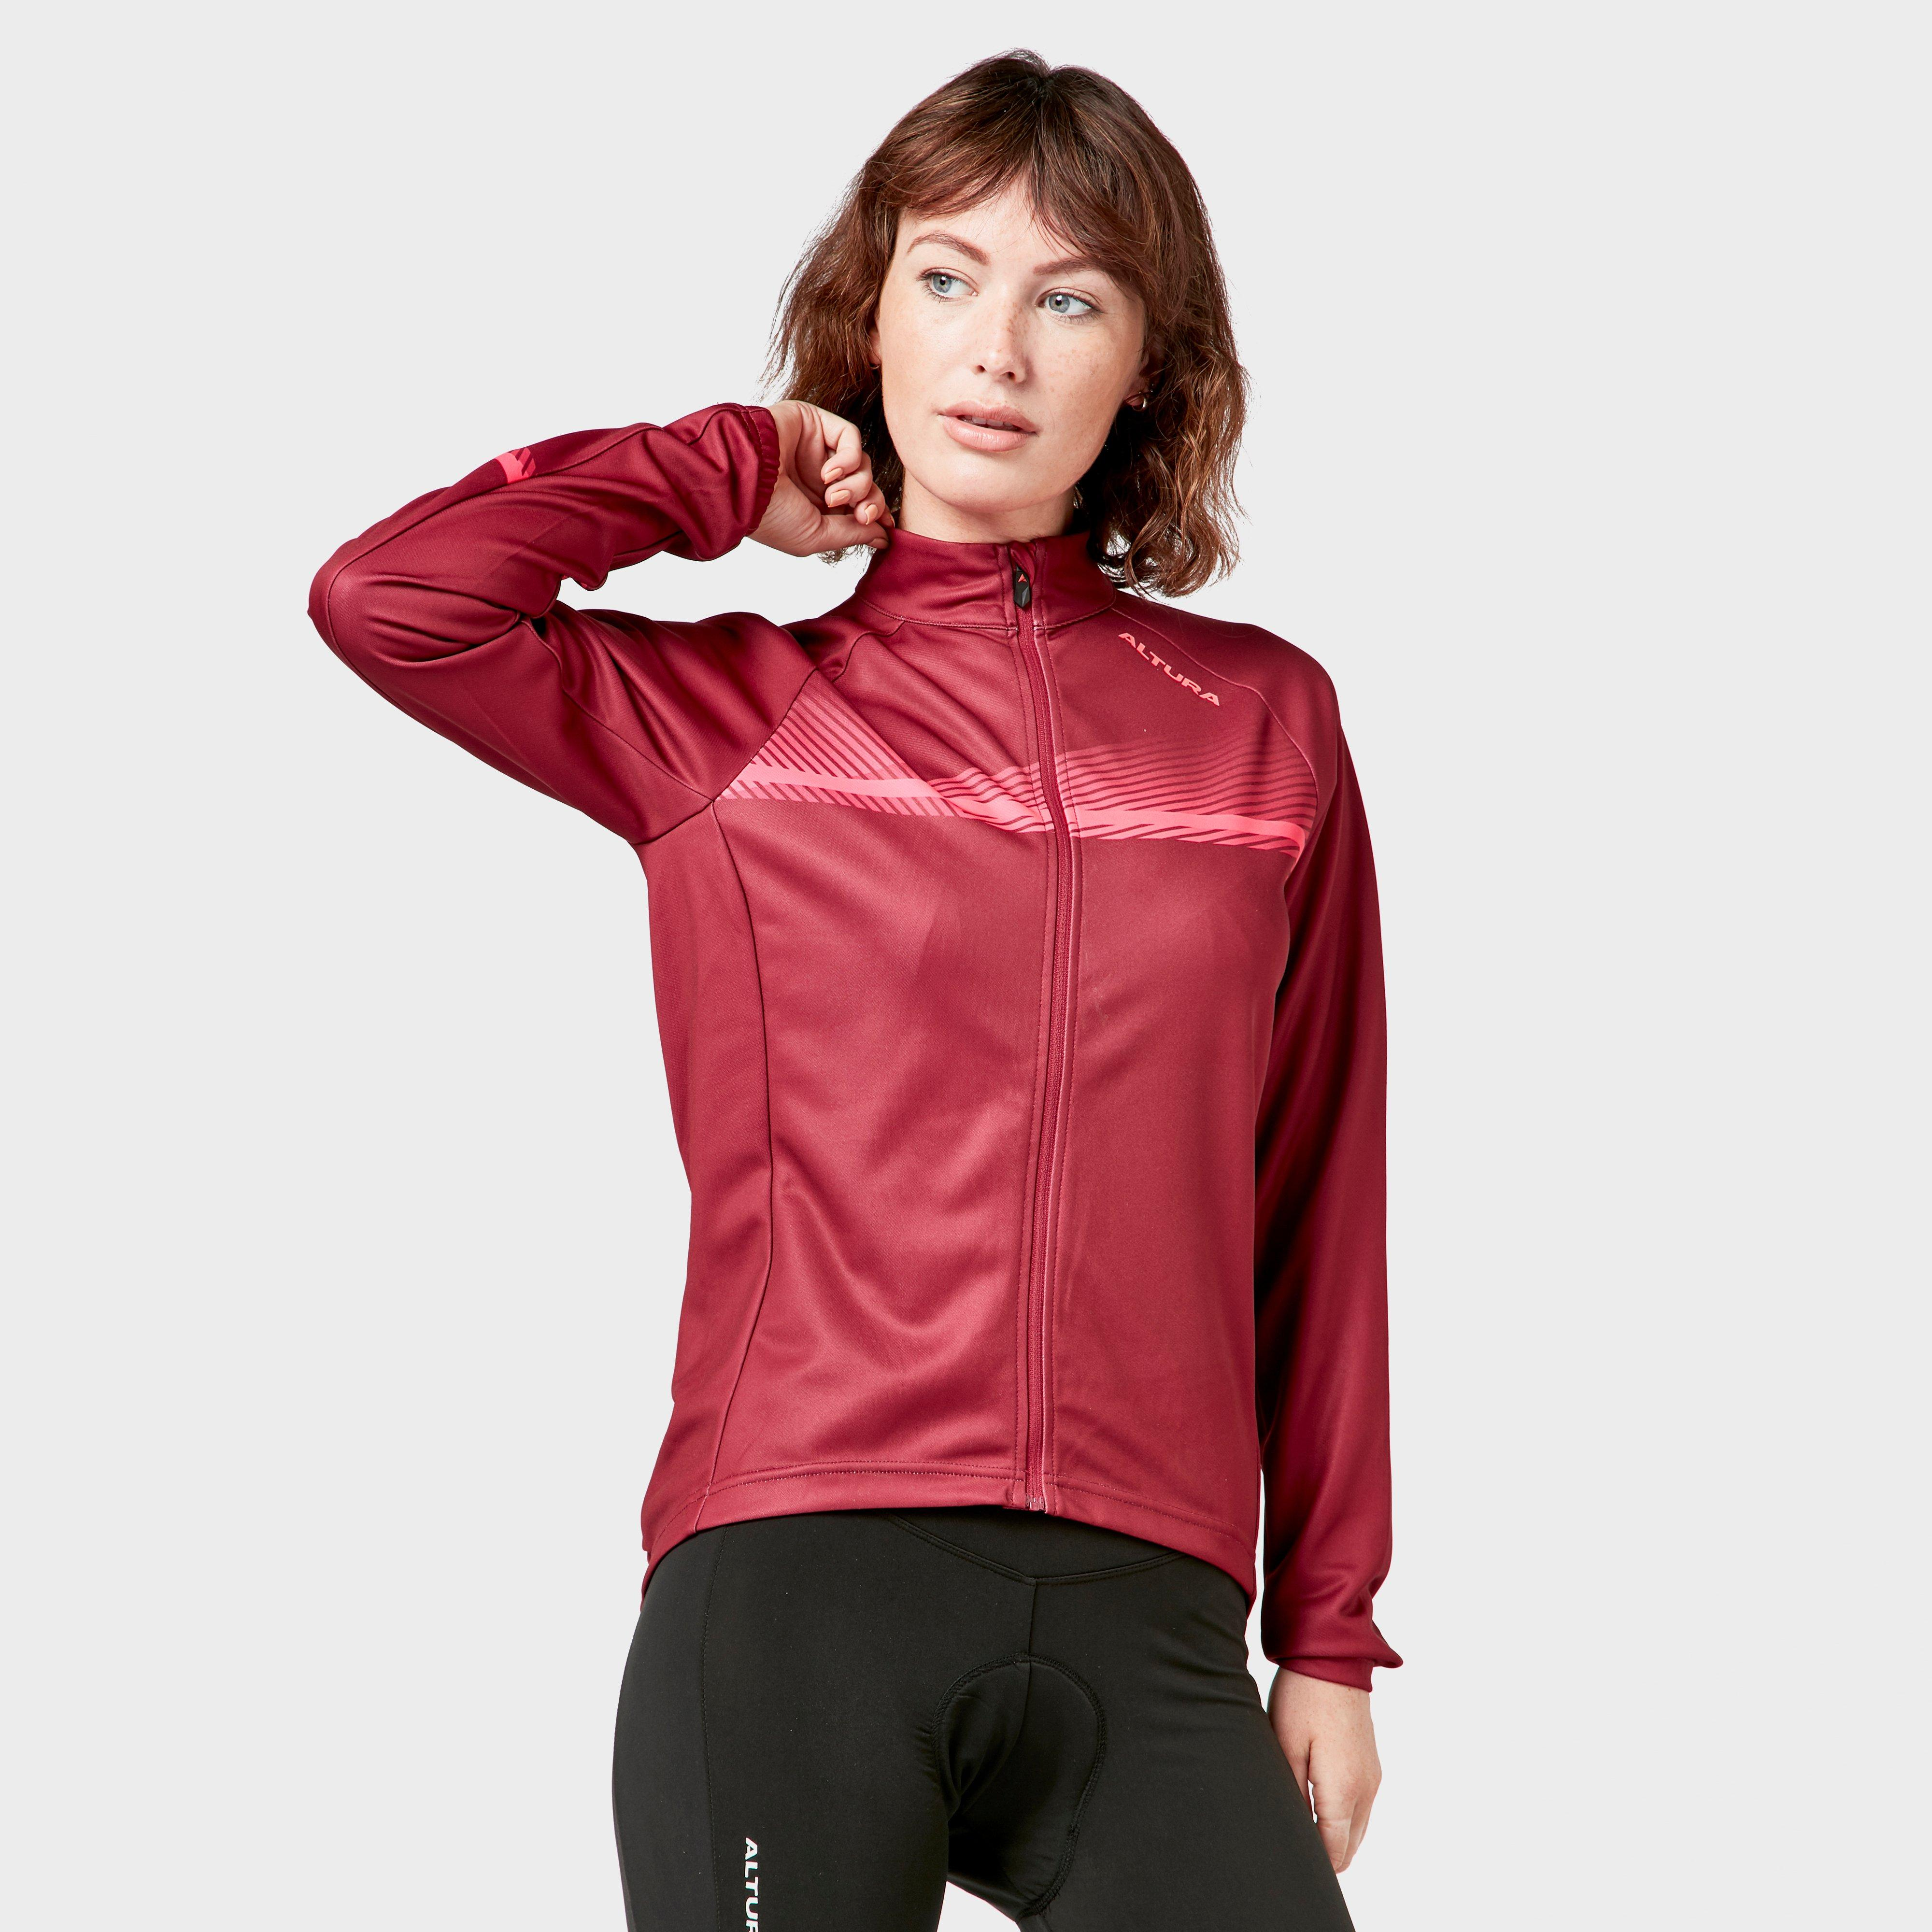 Altura Altura womens Airstream Long Sleeve Jersey - Red, Red